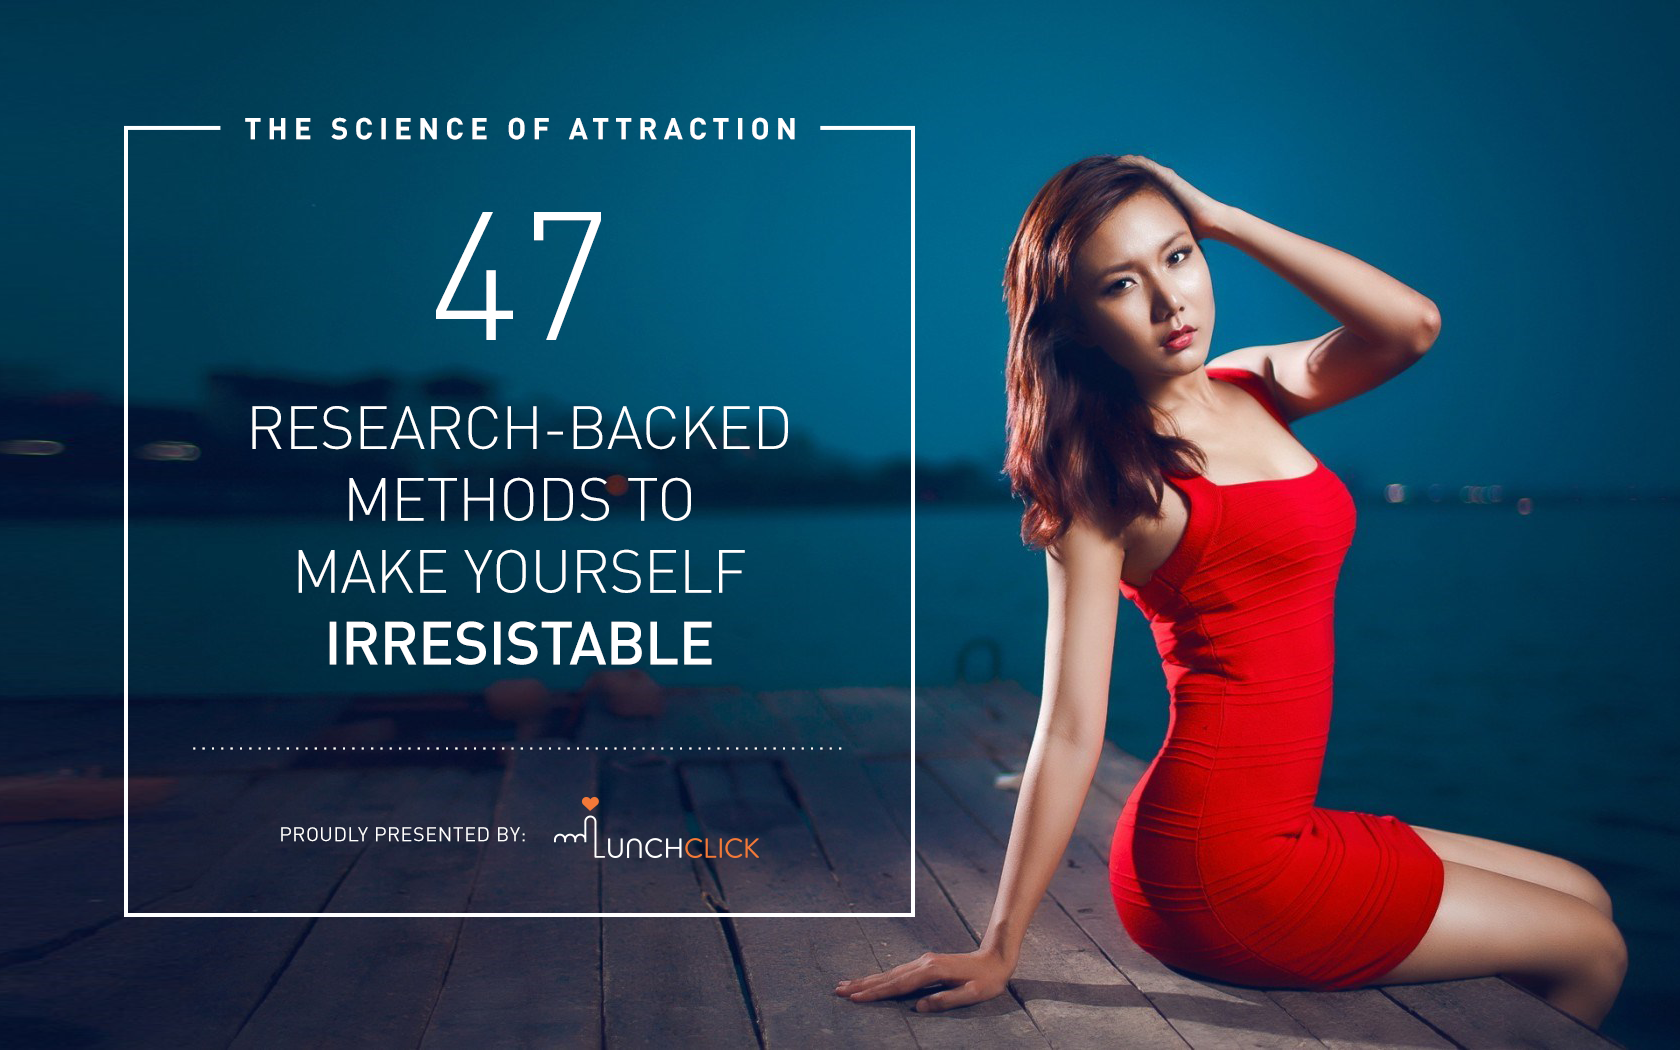 LC_ScienceOfAttraction_47_4